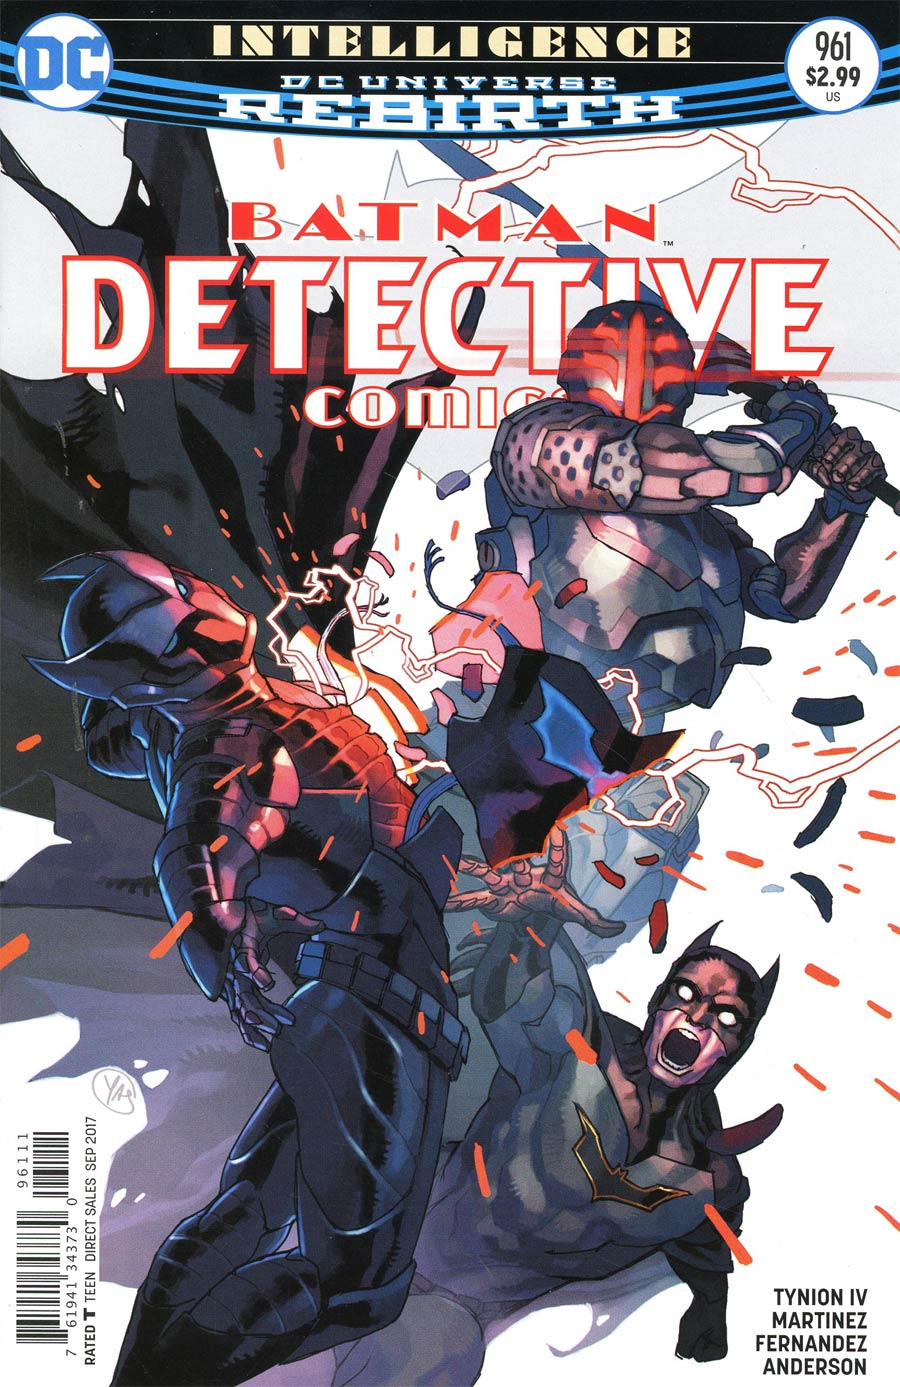 Batman - Detective Comics 961 - Intelligence 4: Ghost in the Shell